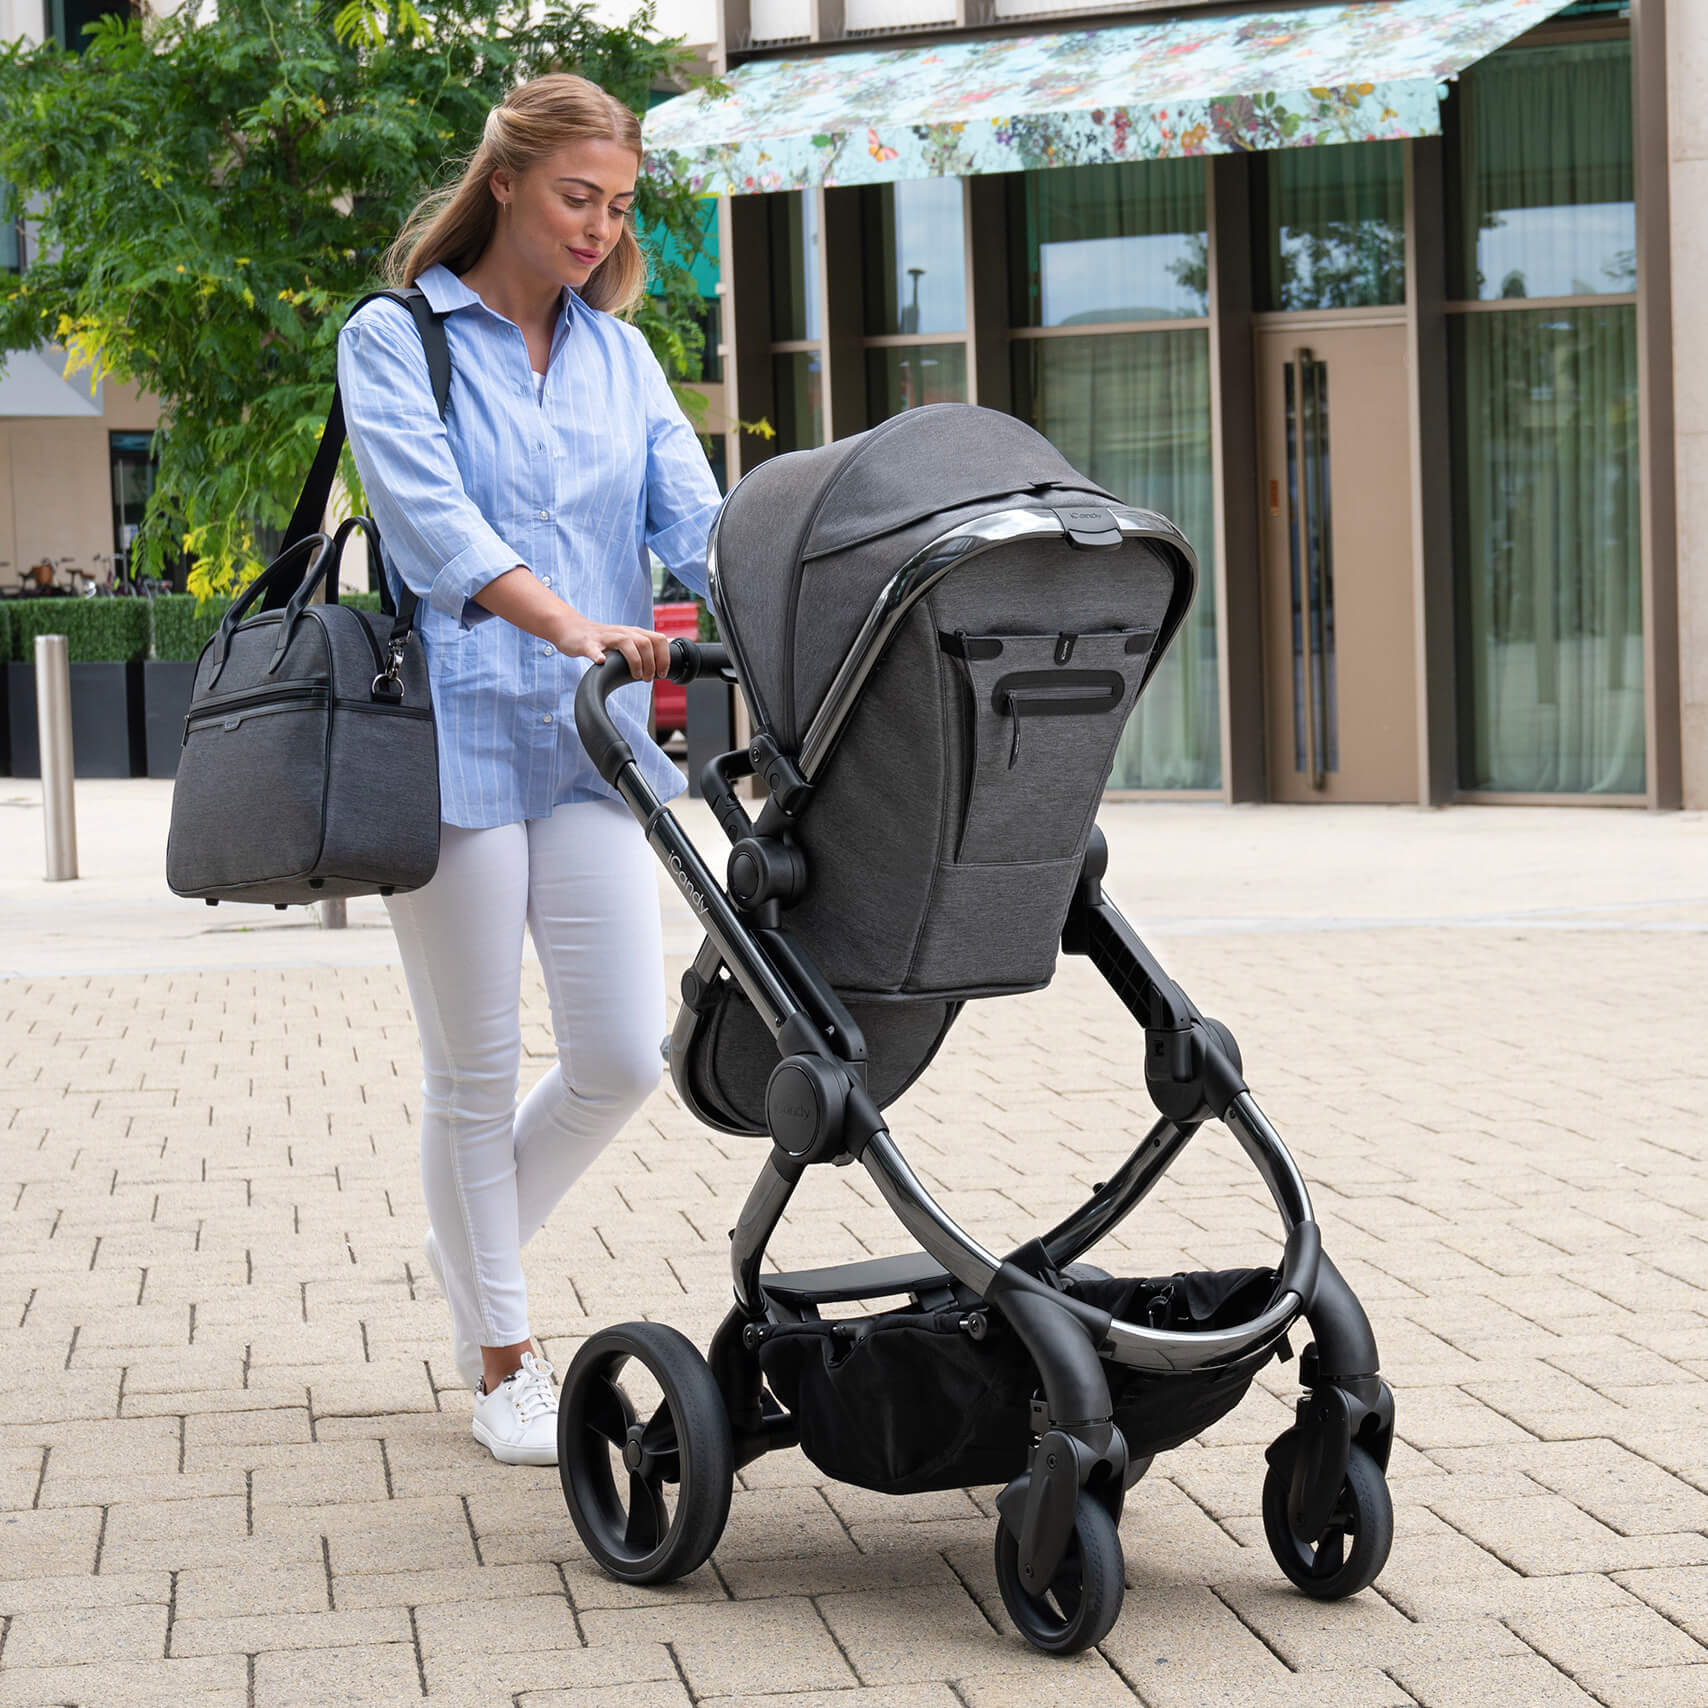 What is a pushchair?